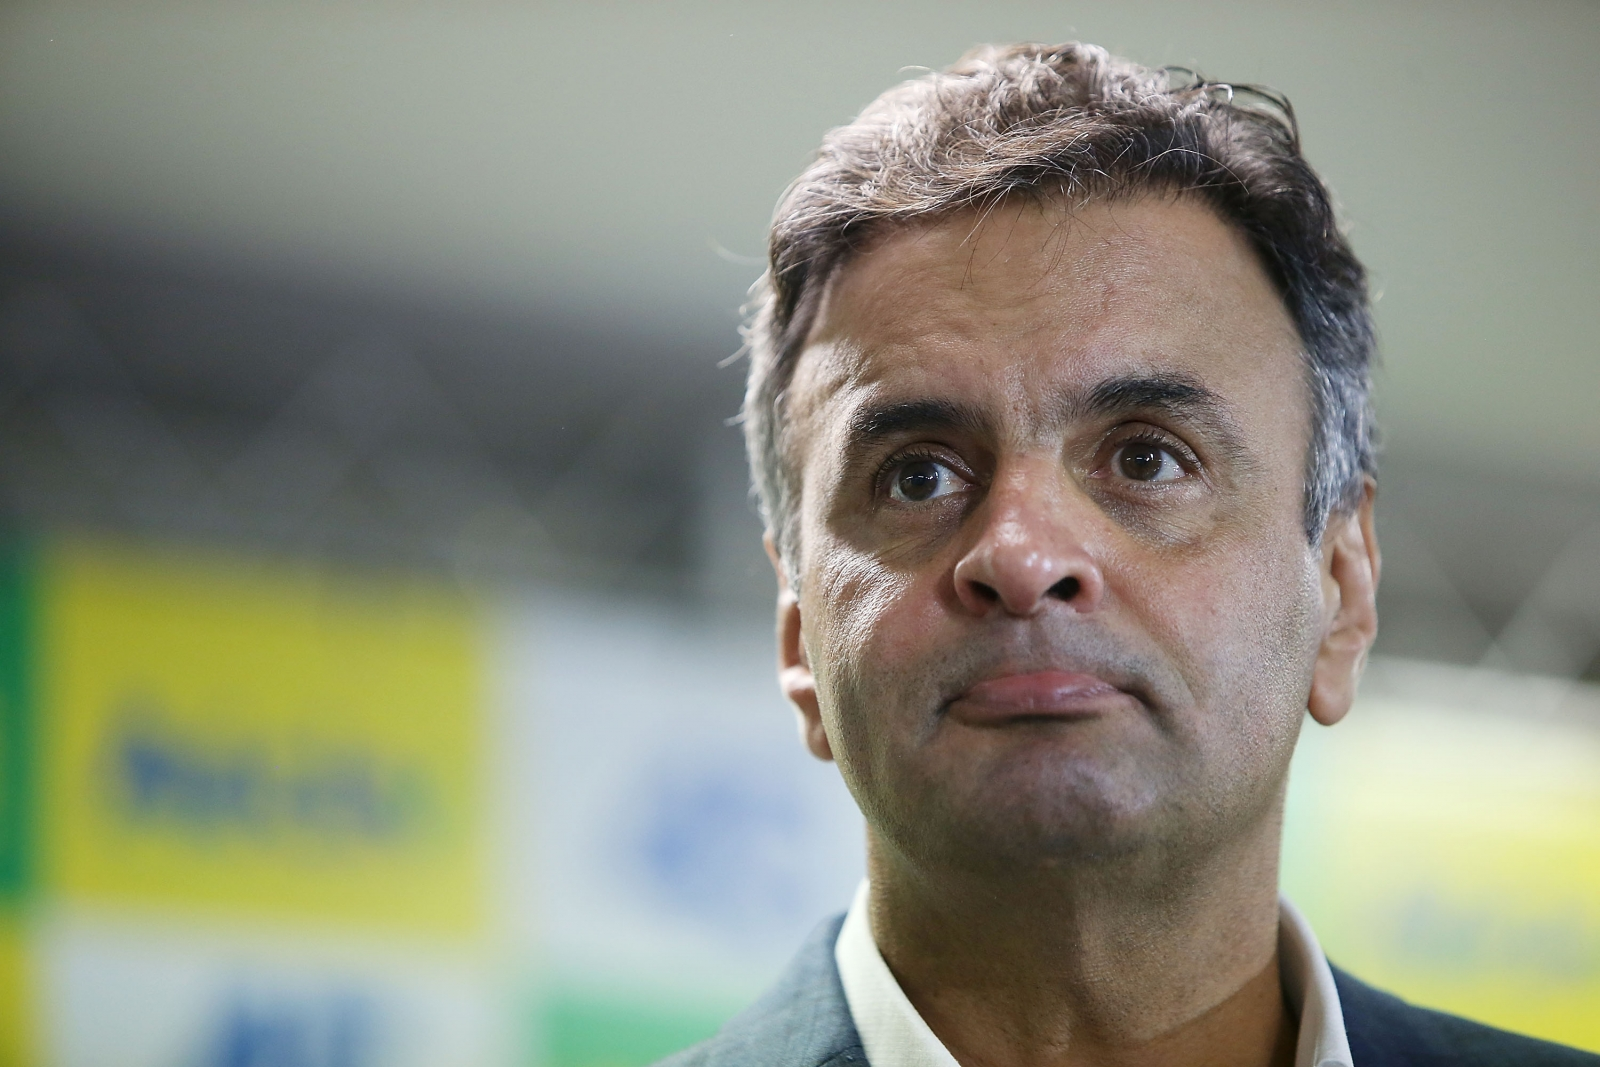 Aecio Neves of the Brazilian Social Democratic Party (PSDB) will square off against current Brazilian President and Workers' Party (PT) candidate Dilma Rousseff